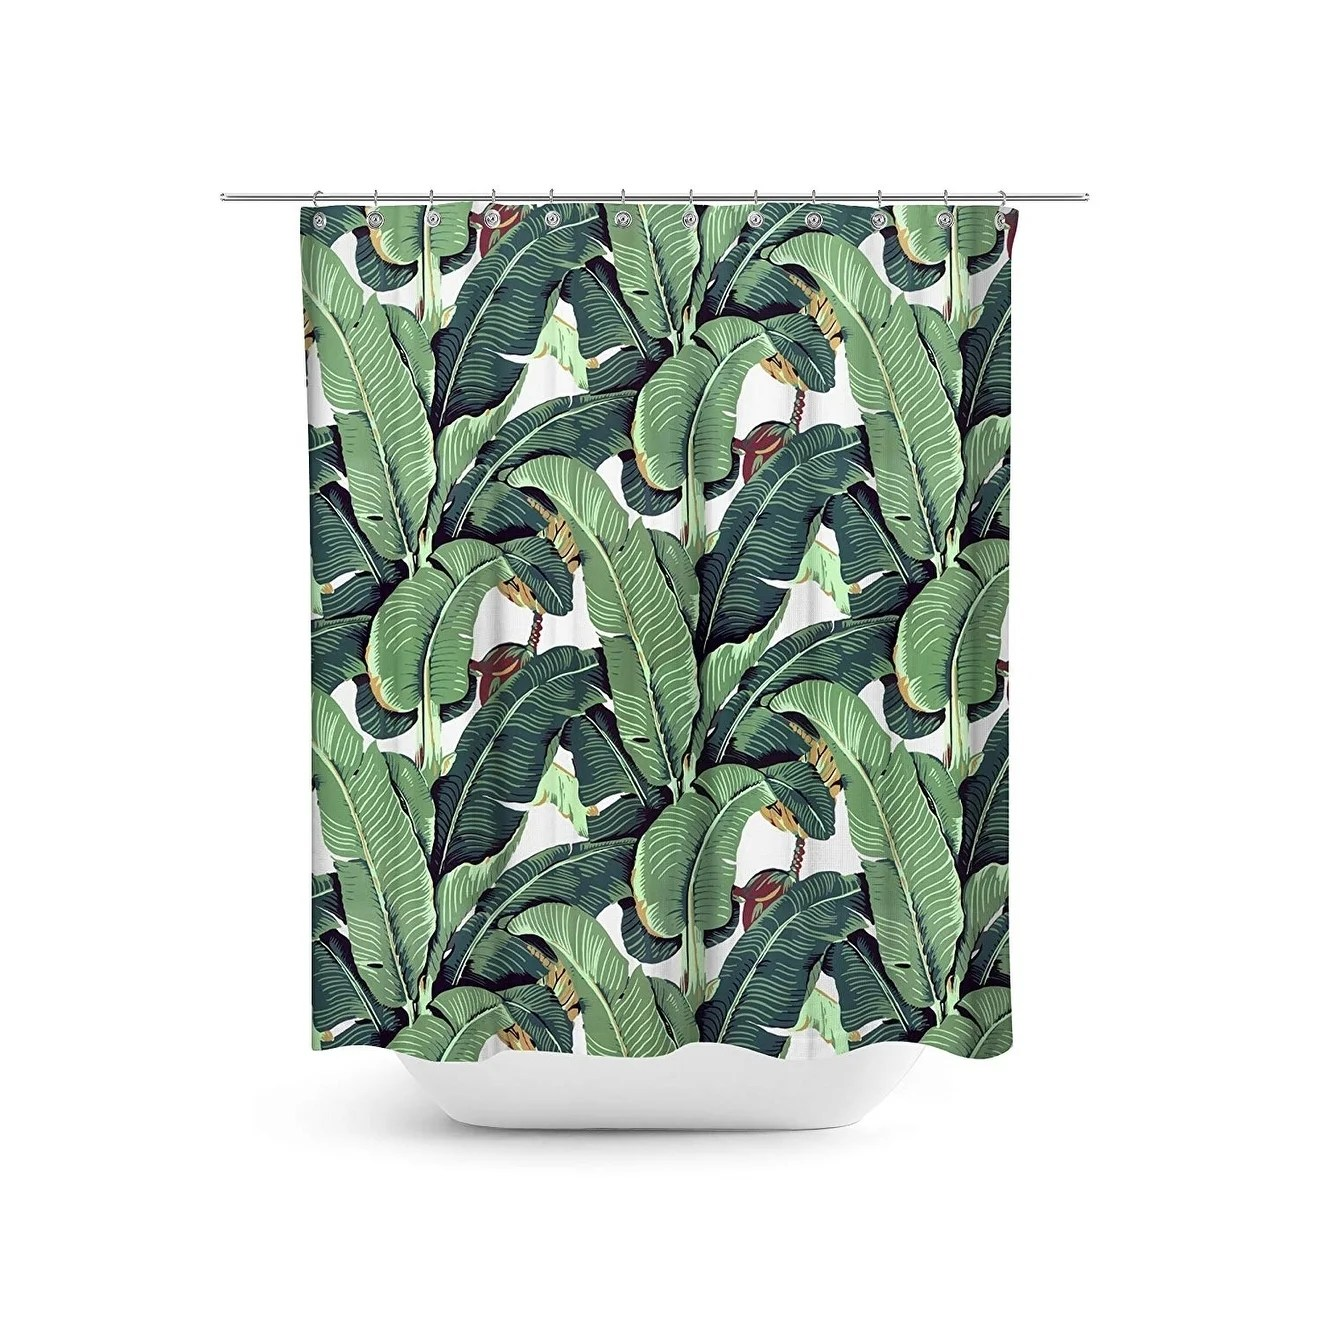 Banana Leaf Shower Curtain Tropical Plant Banana Leaf Shower Curtain Set